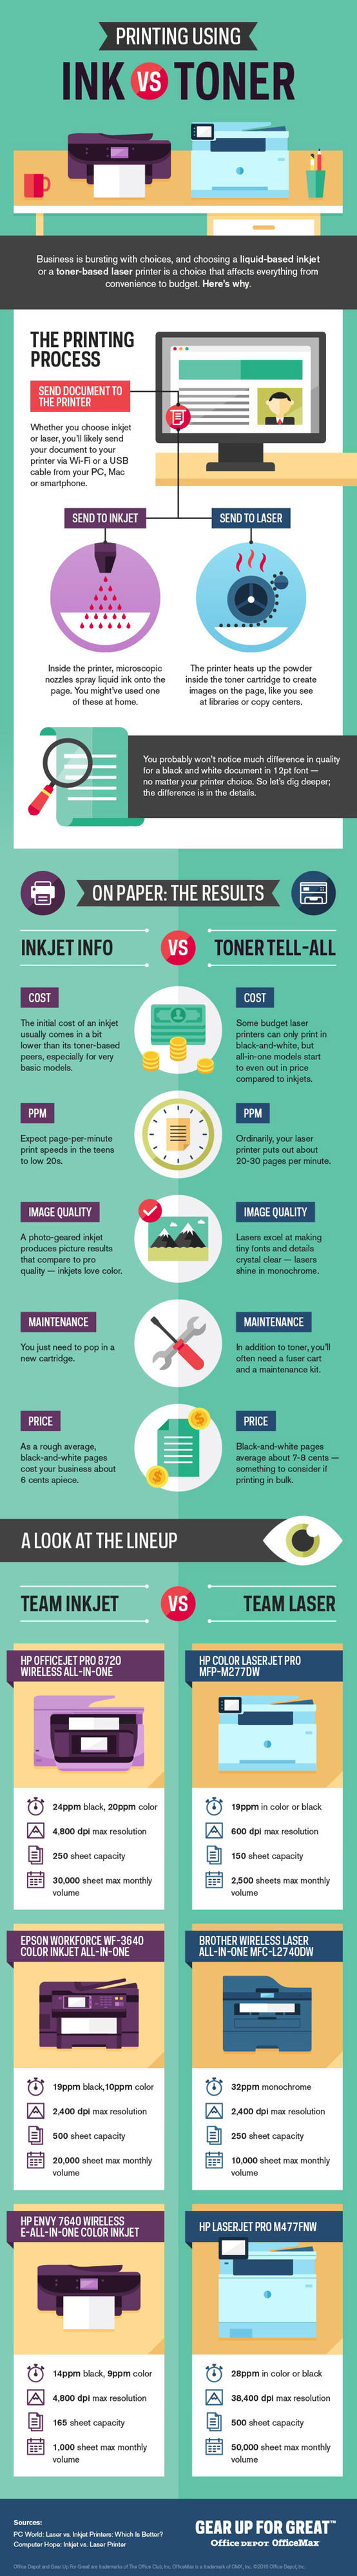 Printing-Using-Ink-Vs-Toner-Infographic